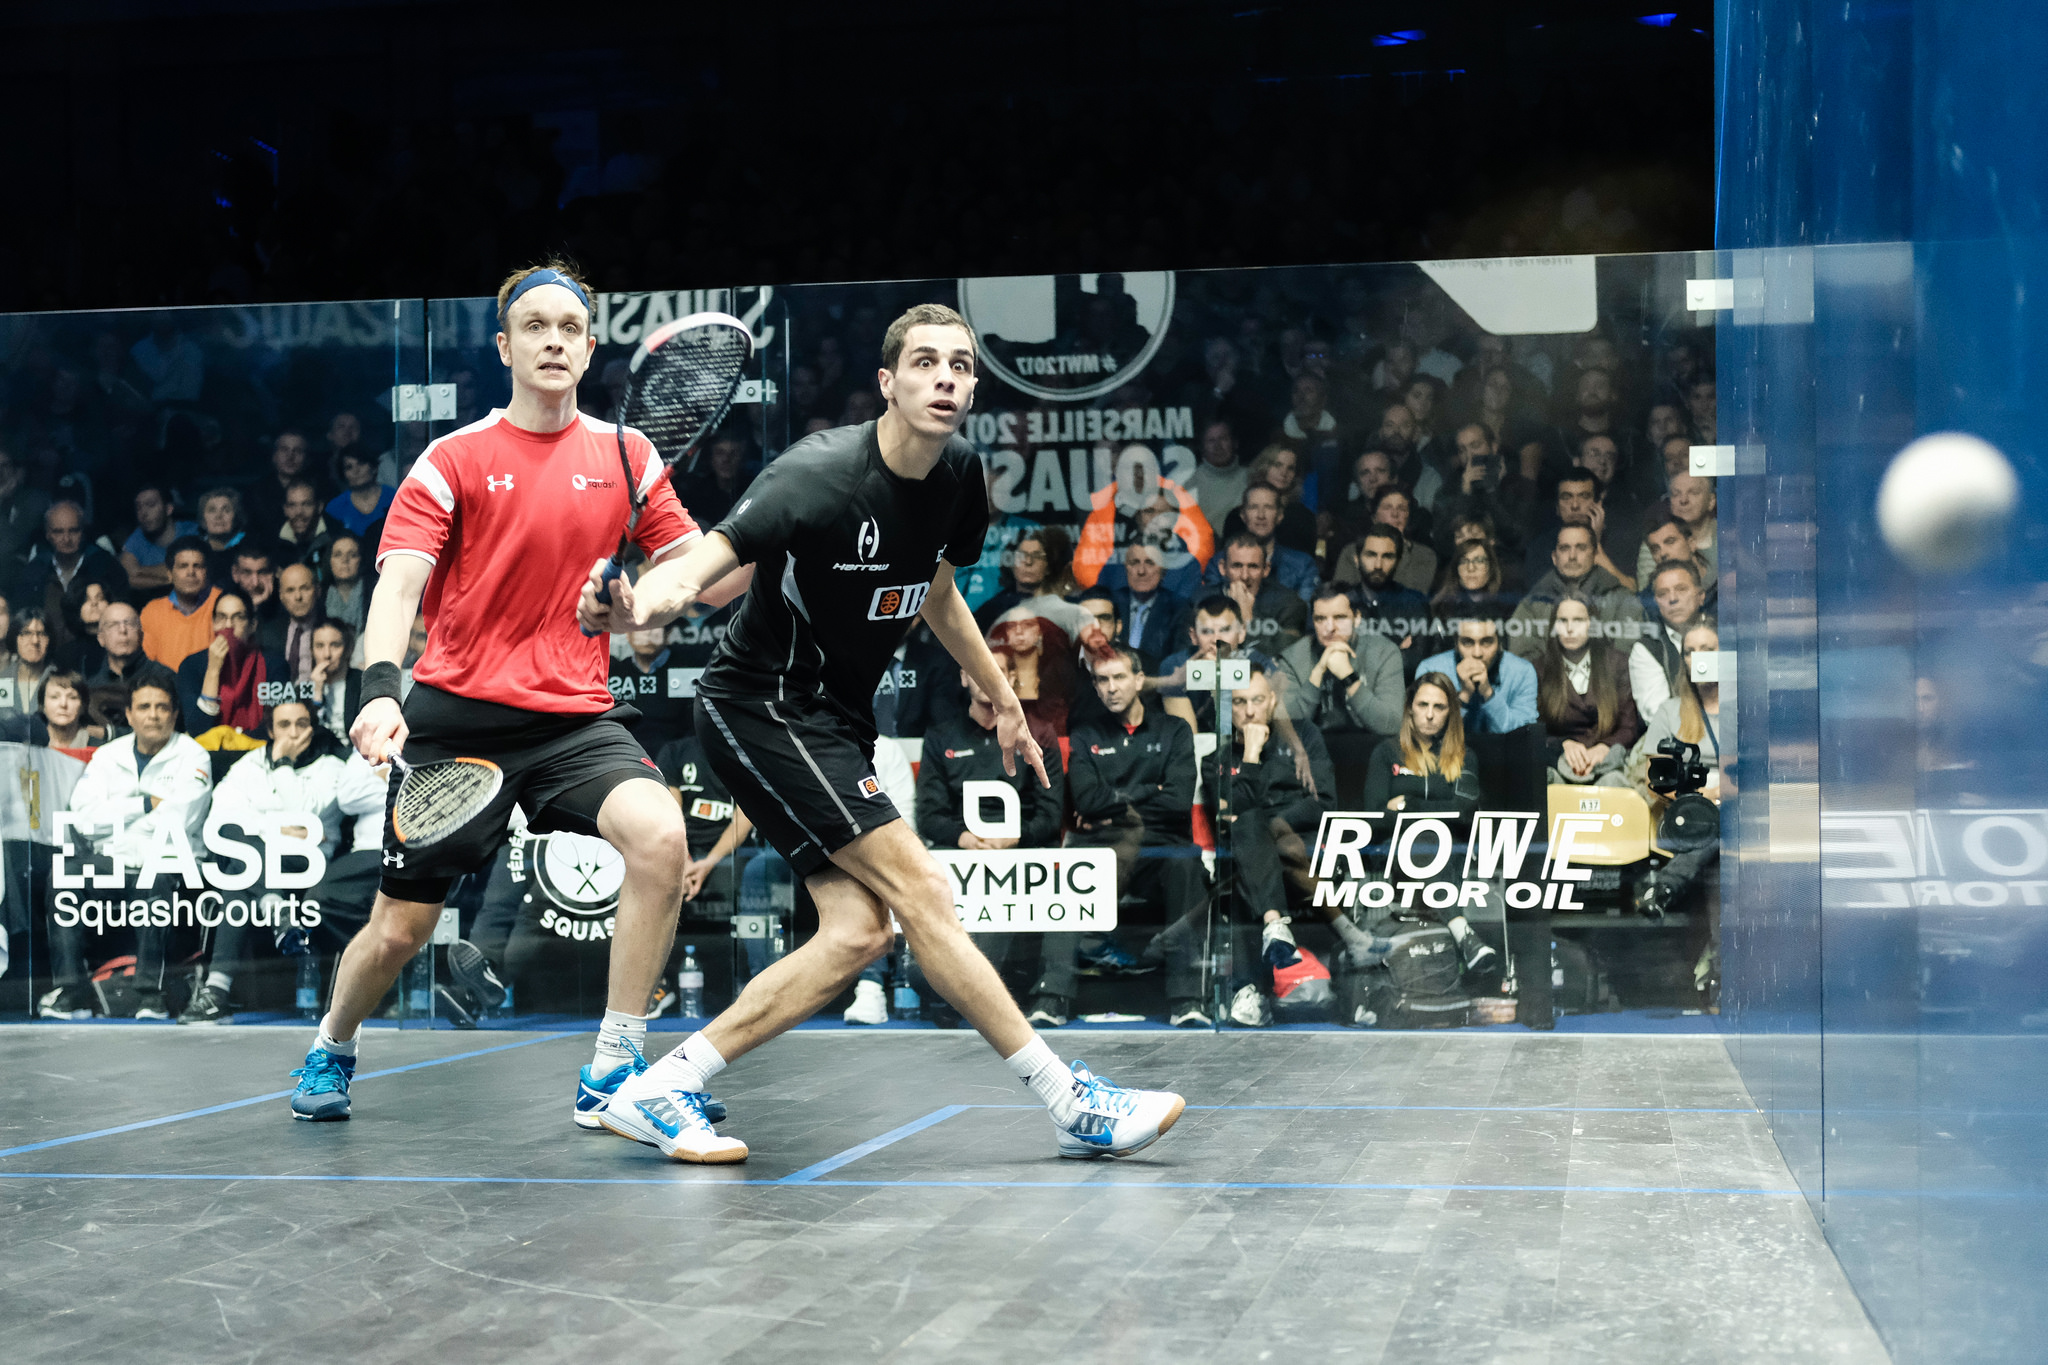 James Willstrop of England and Ali Farag of Egypt go head-to-head during the 2017 WSF Men's World Team Squash Championship final in Marseille, France.